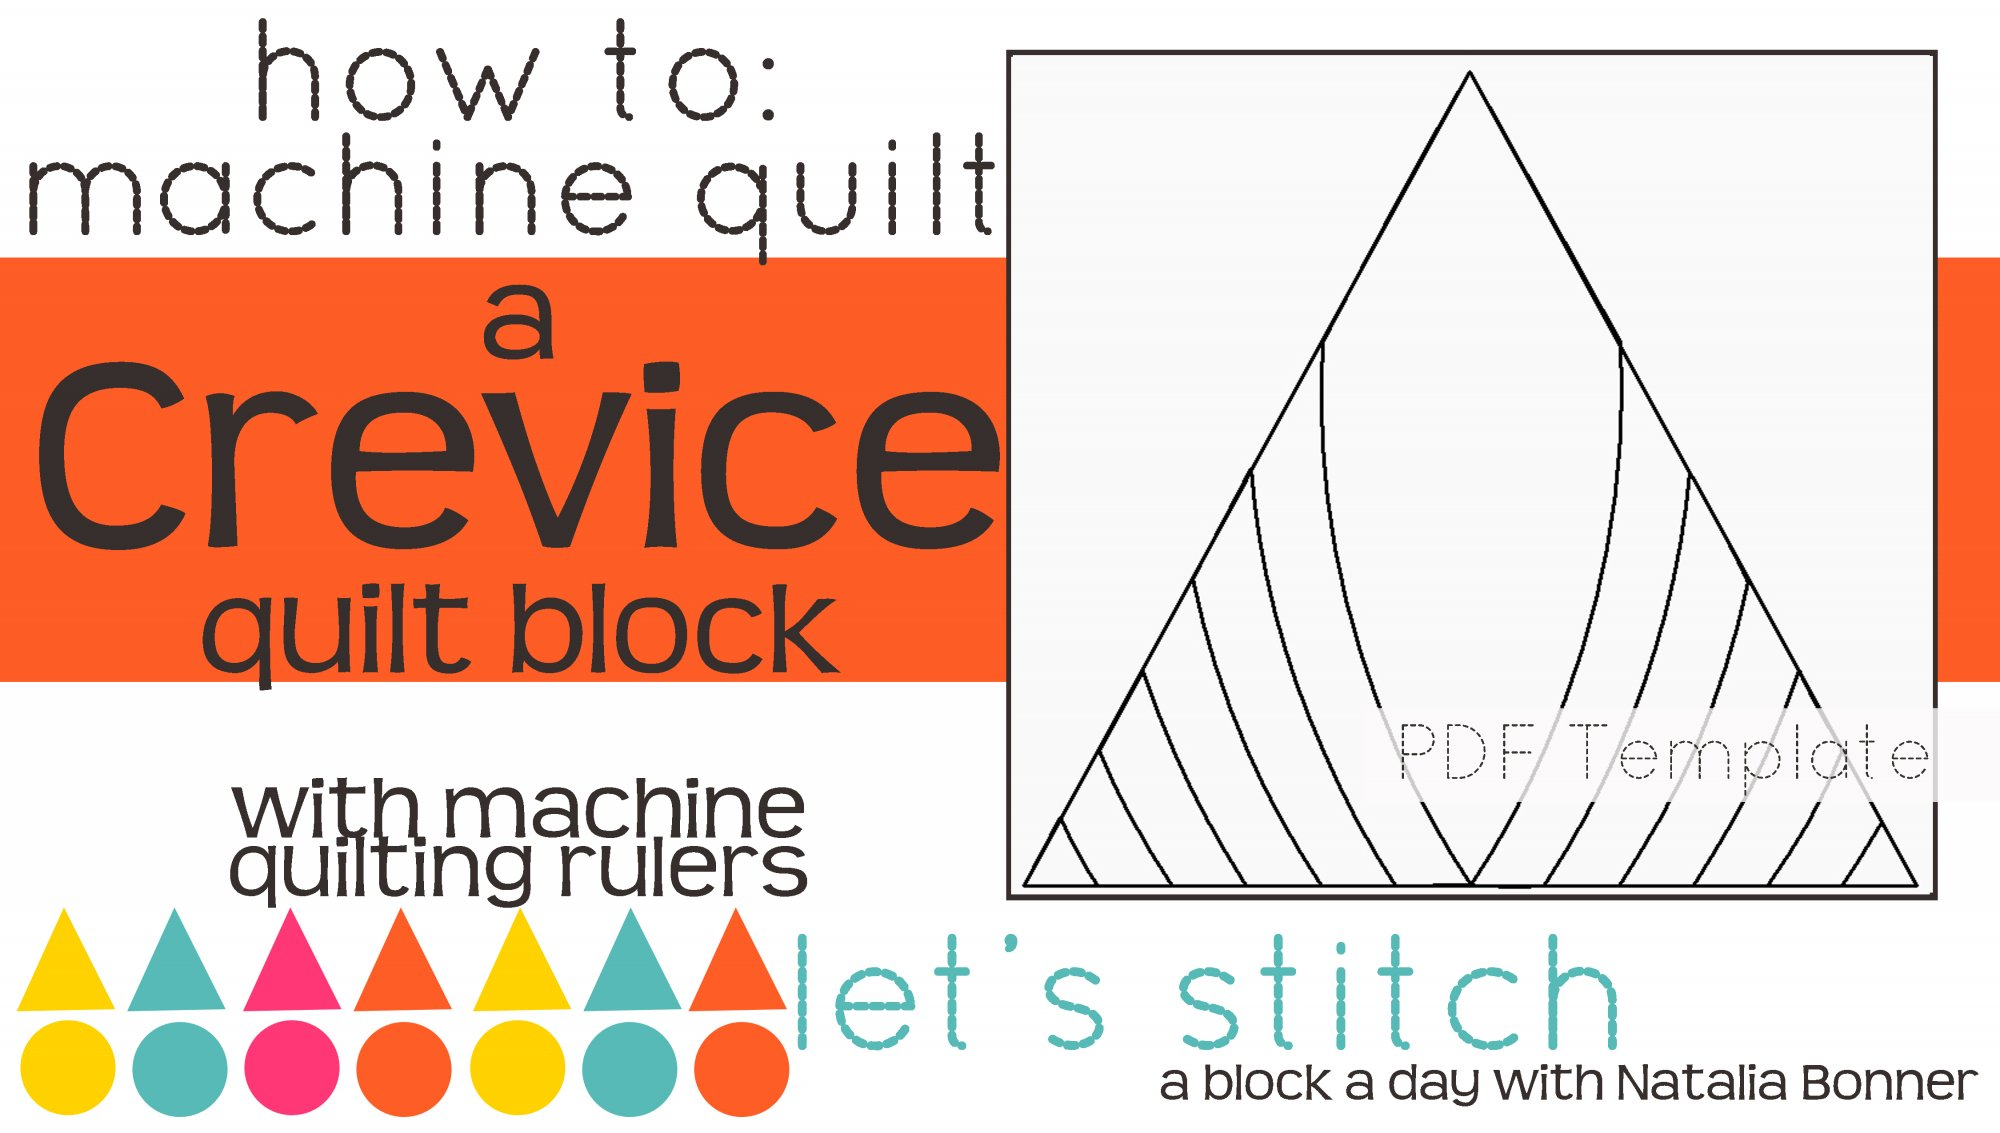 Let's Stitch - A Block a Day With Natalia Bonner - PDF - Crevice